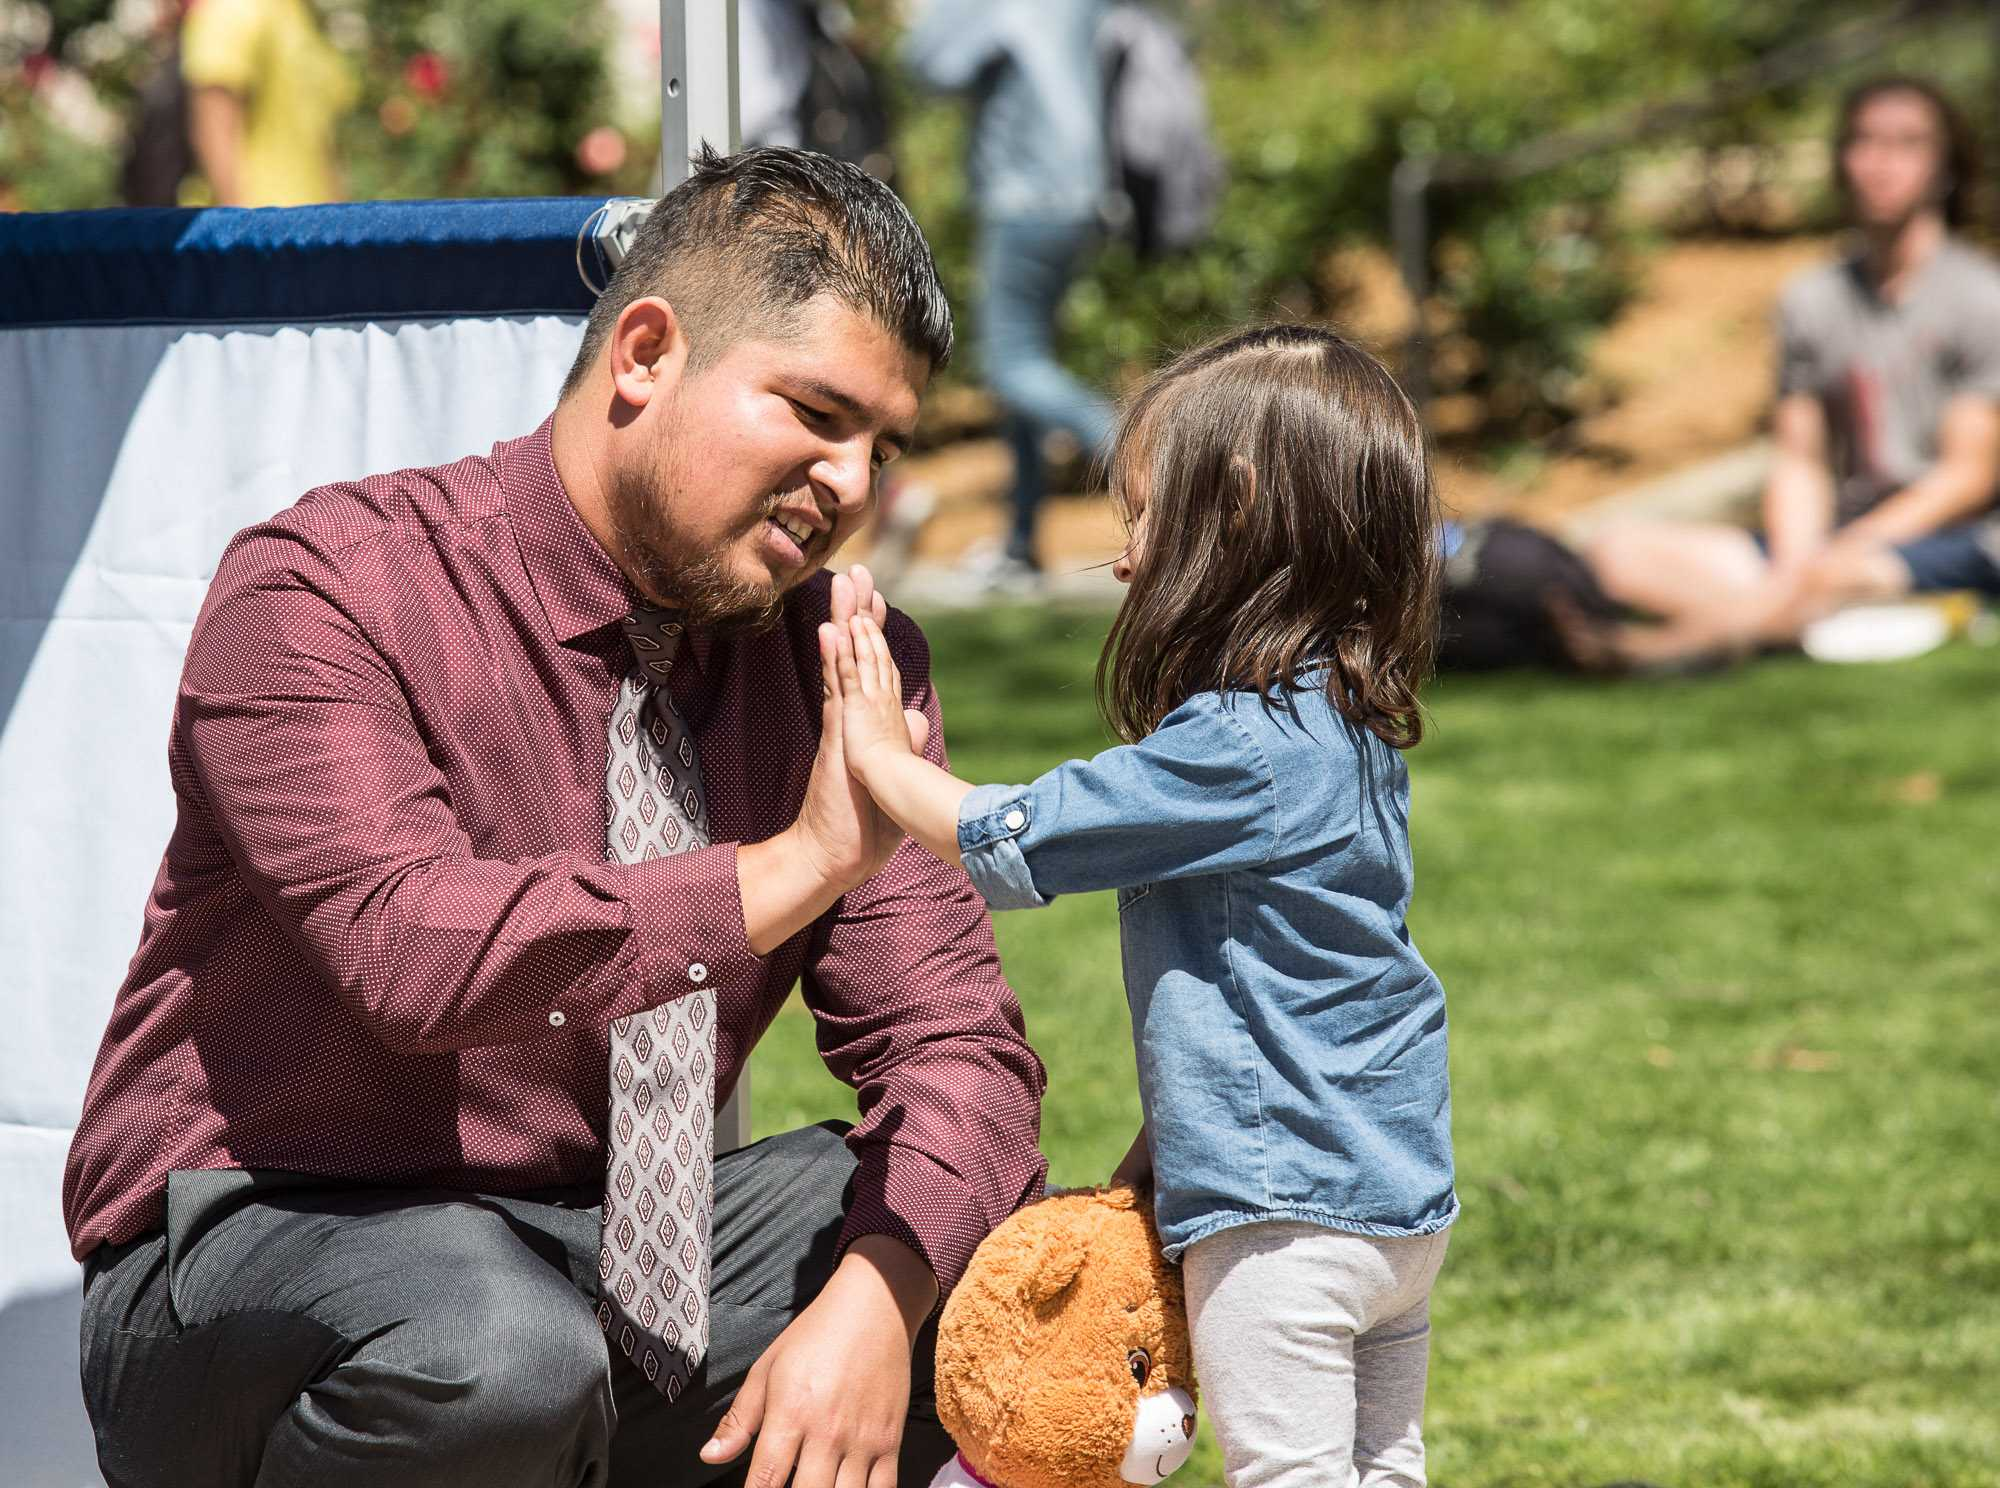 President of the Home Boys and Home Girls Club Edgar Mauricio Gonzalez gets a high five from his daughter after campaigning for Associated Student (A.S.) Vice President during the A.S. debate which took place at the clock tower quad in Santa Monica Community College in Santa Monica Calif., on Tuesday, March 28, 2017. Gonzalez was announced as the A.S. Vice President on Friday, April 7, 2017.(Photo by Matthew Martin)